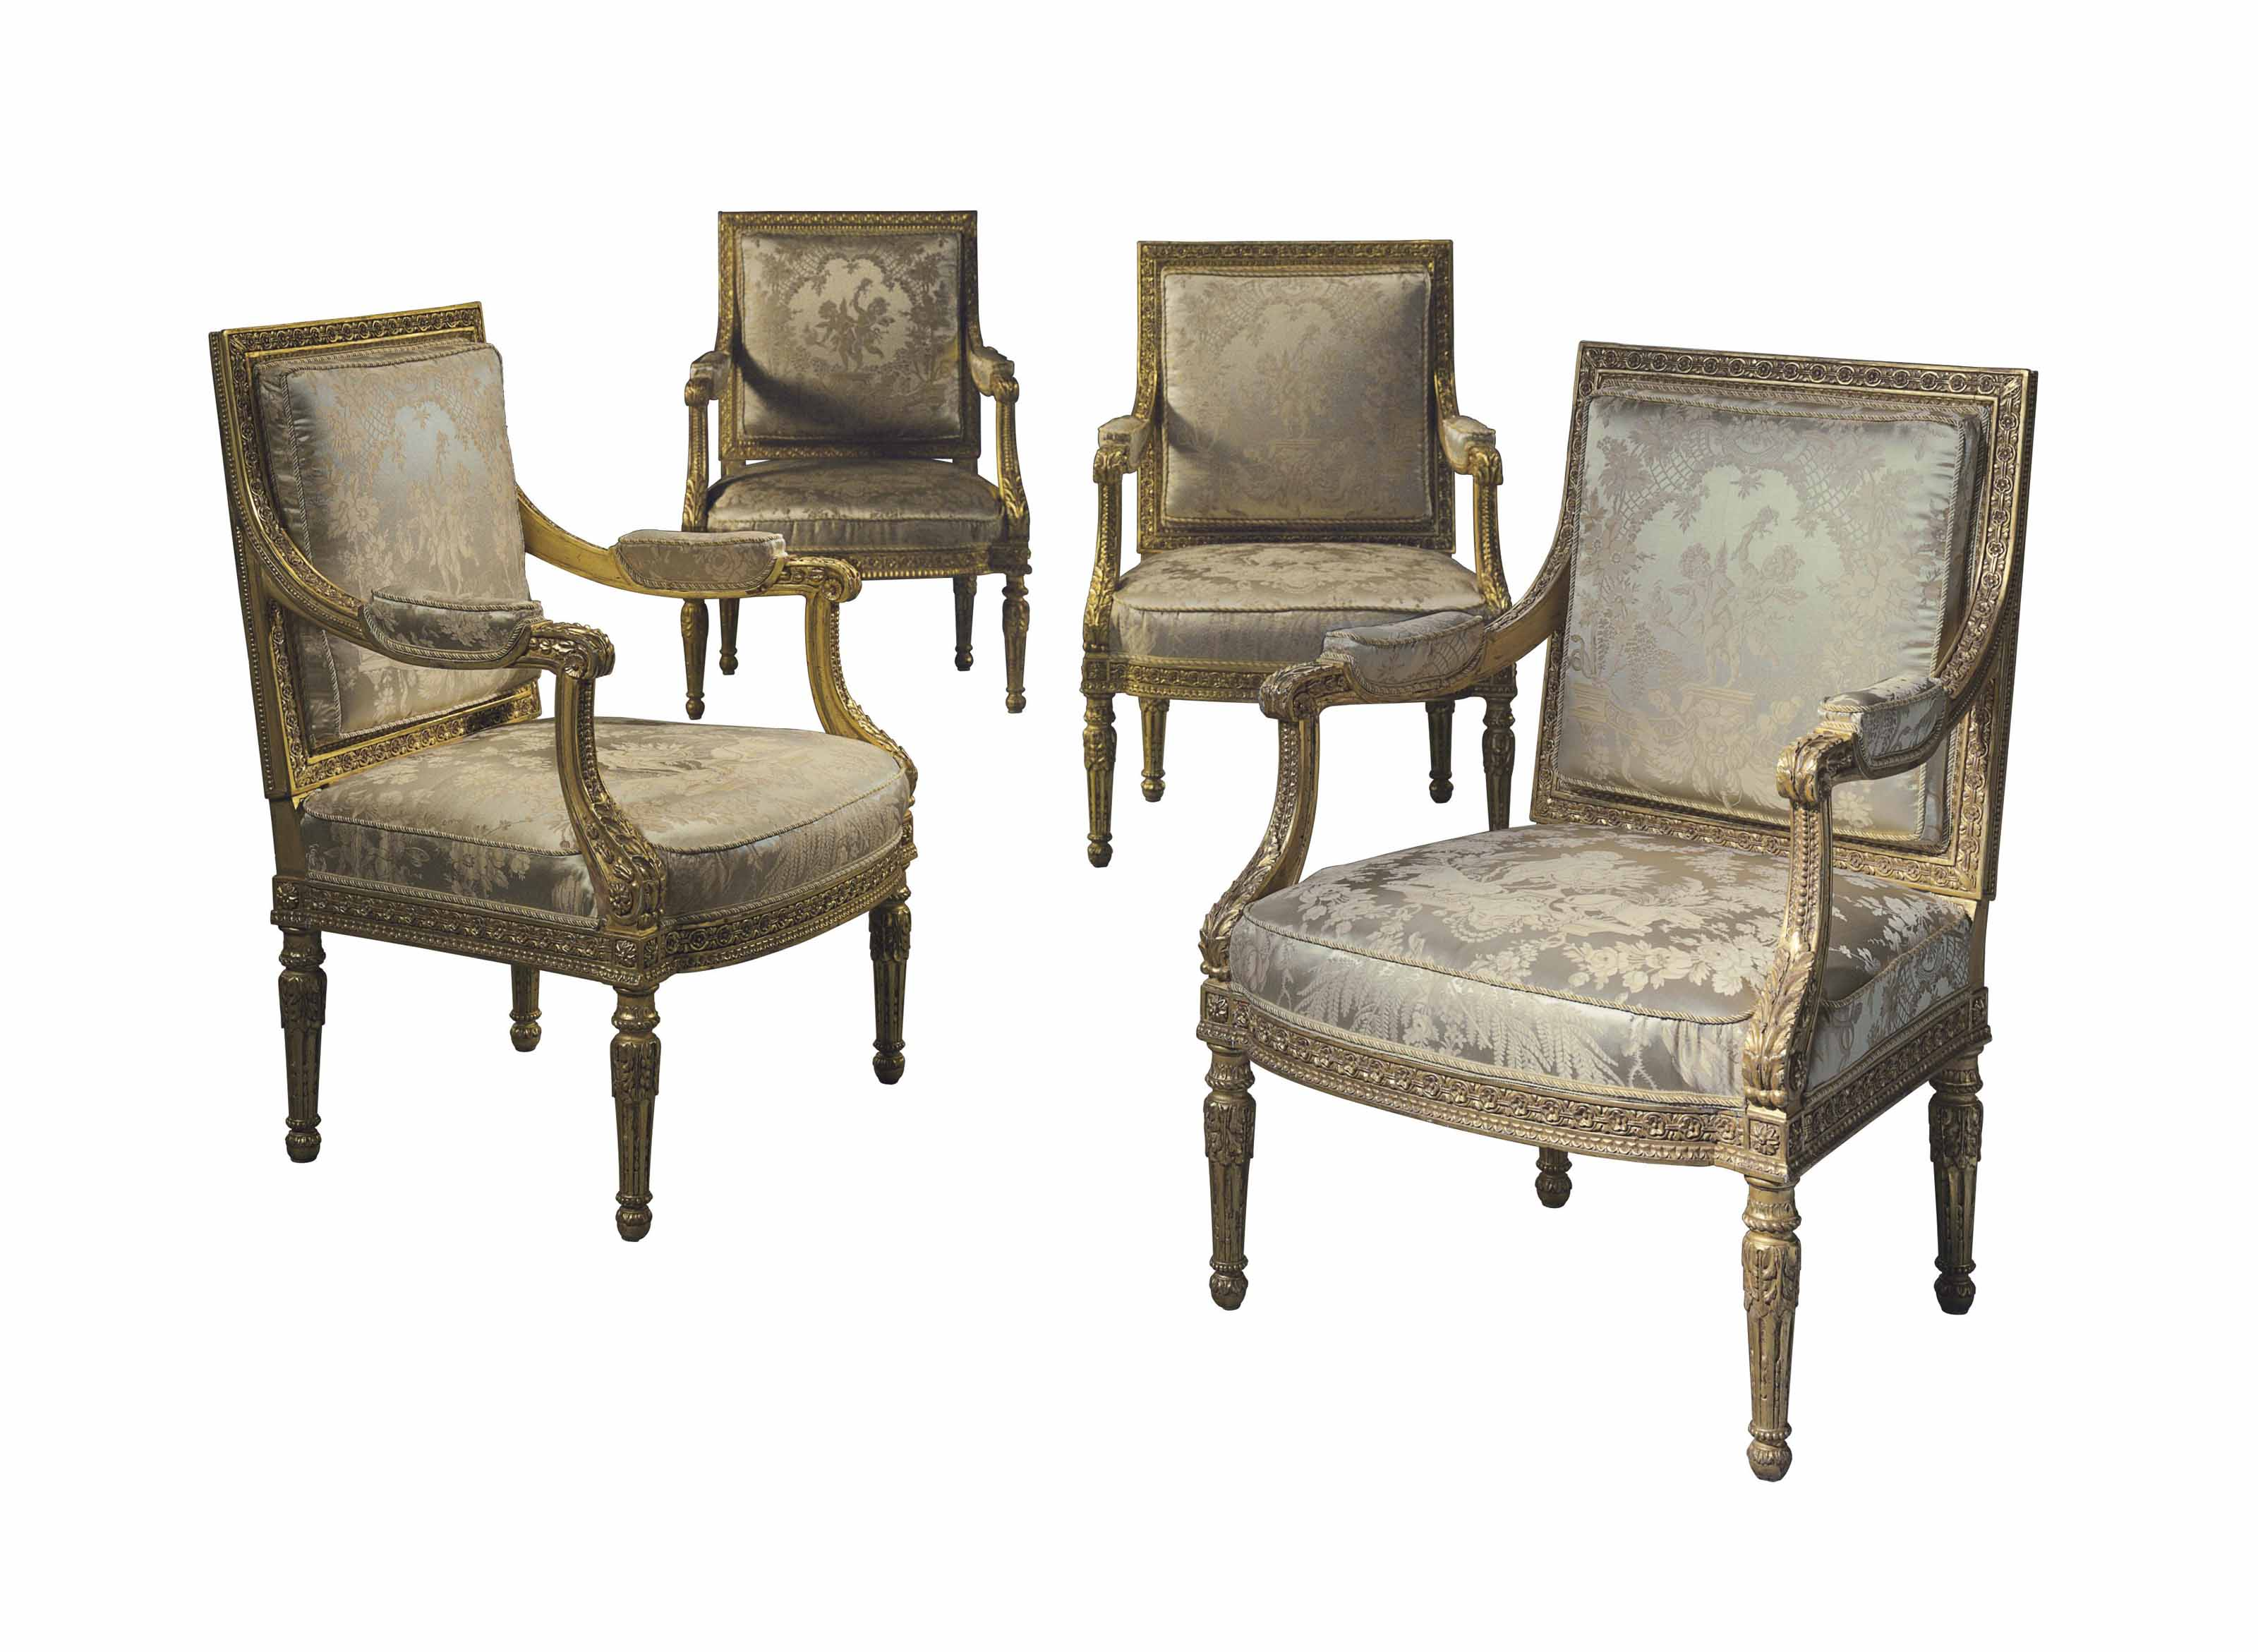 A MATCHED SET OF FOUR LOUIS XV